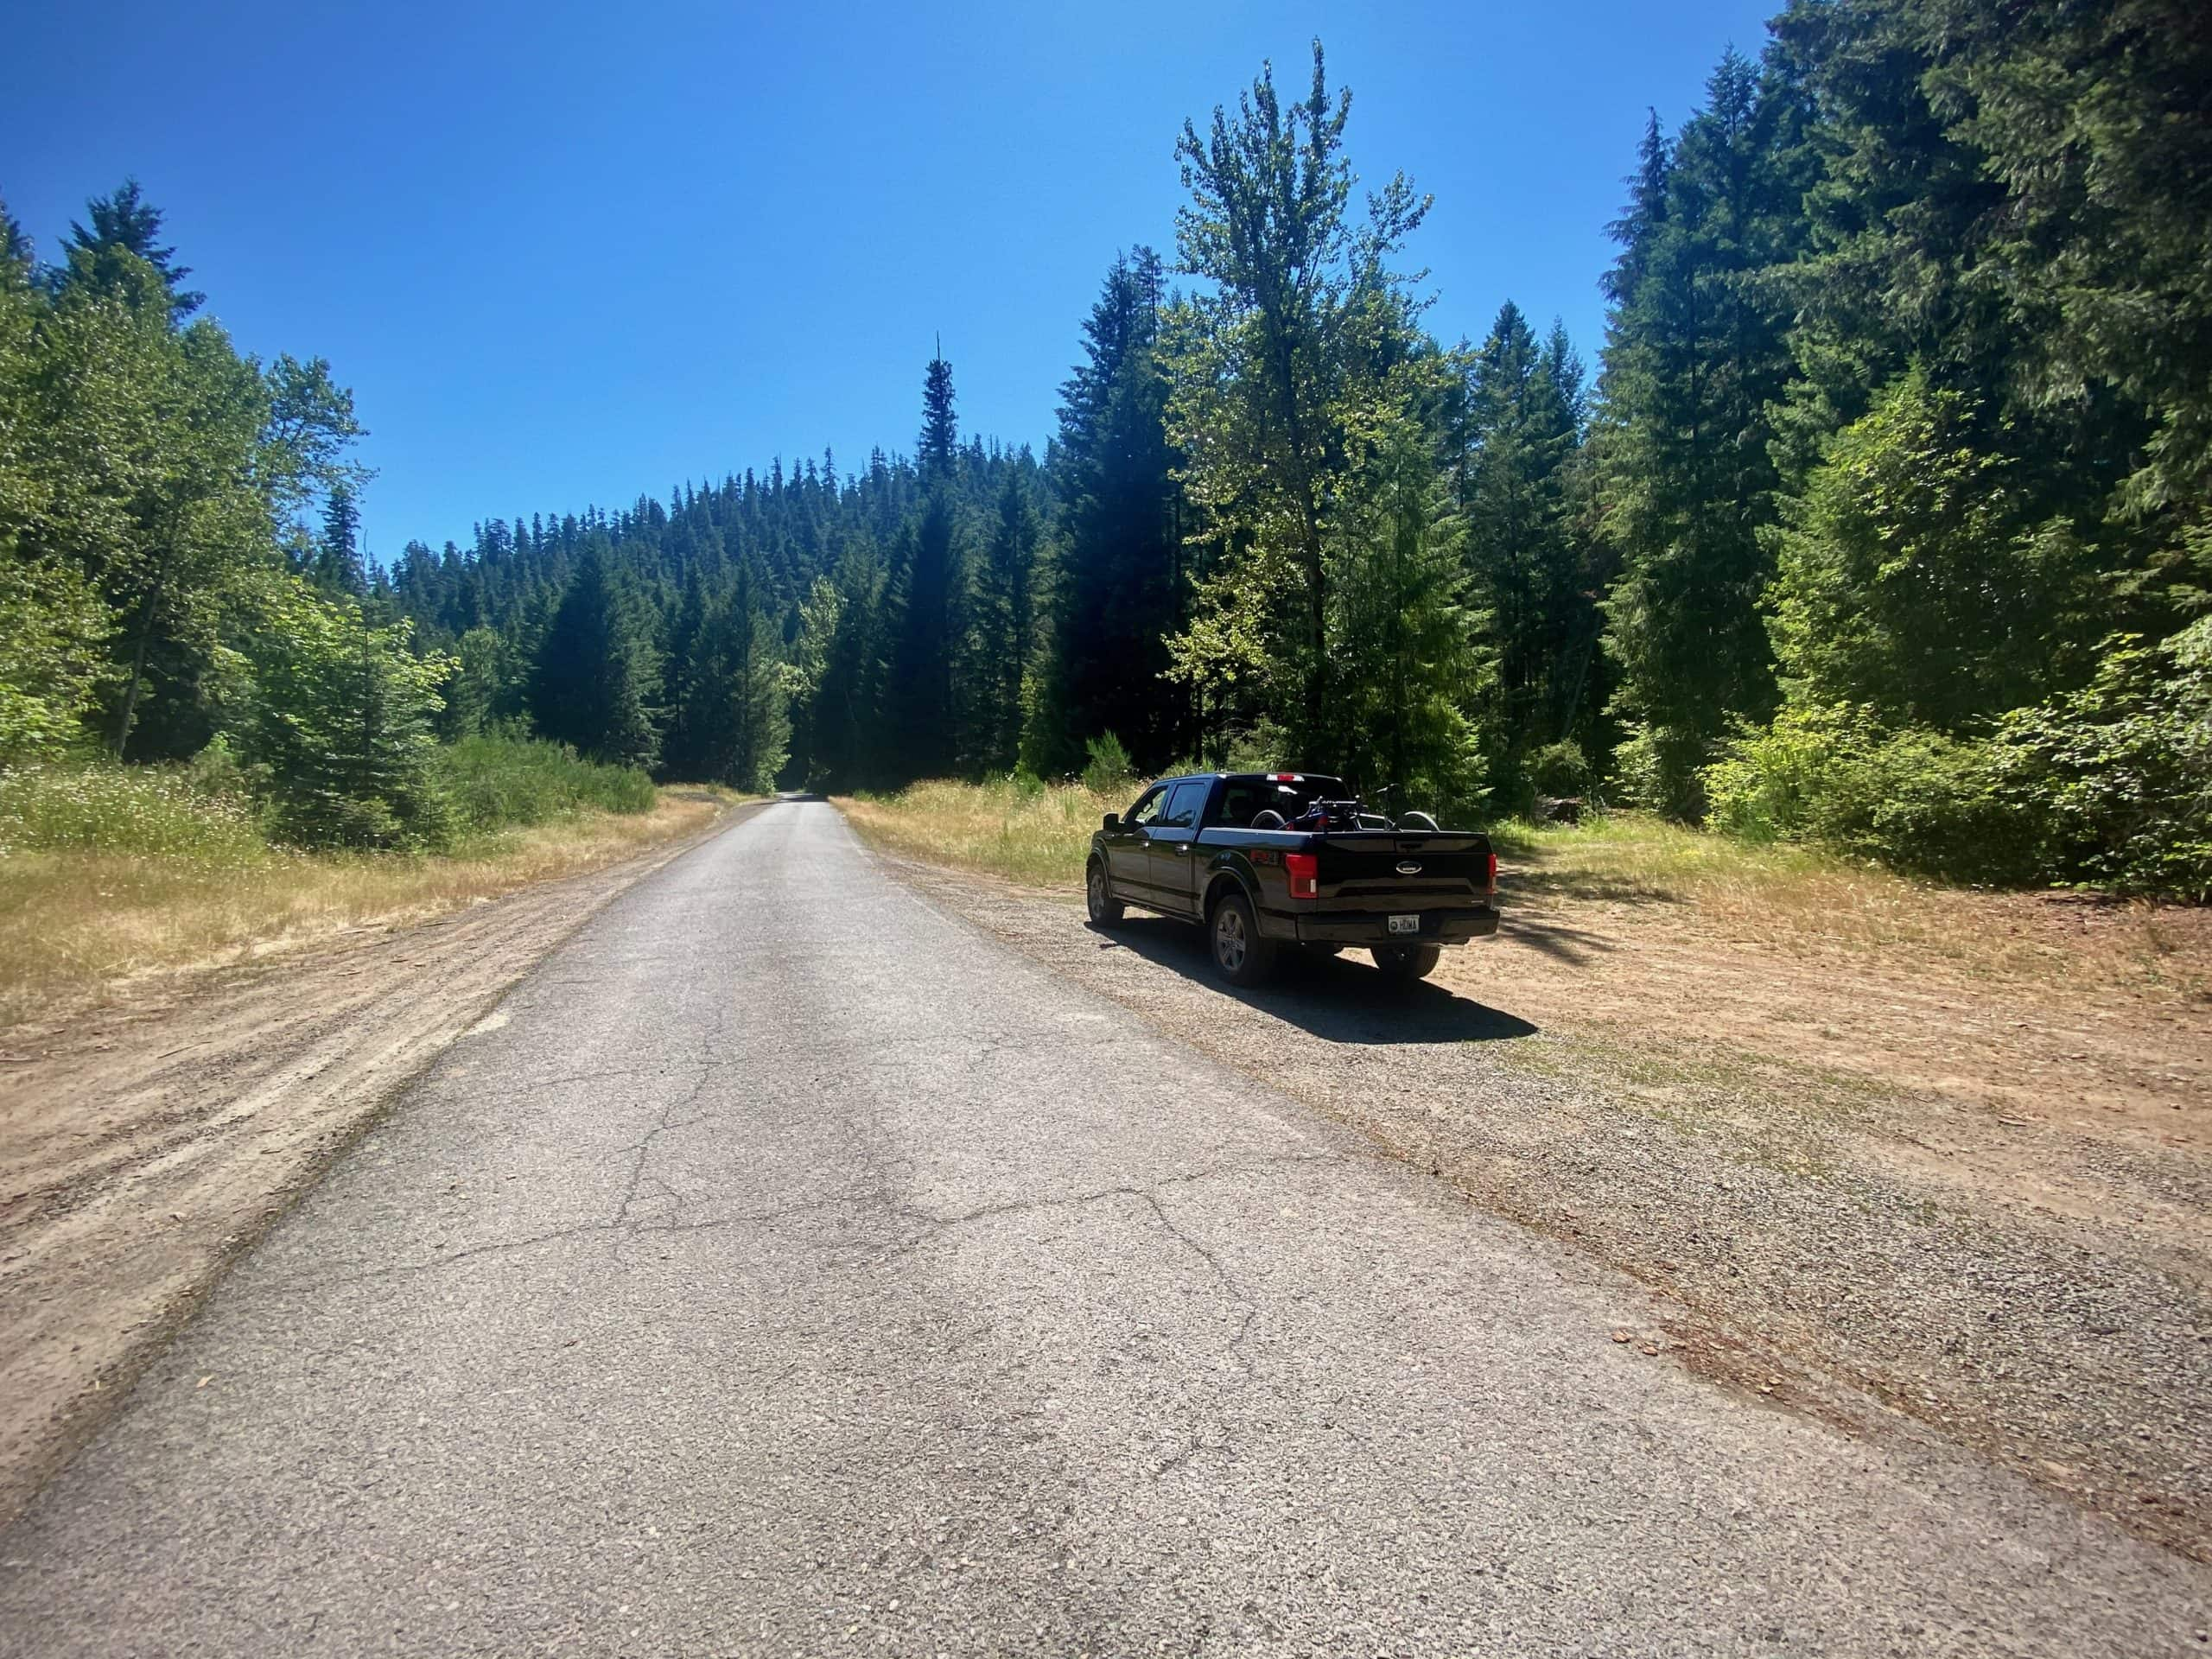 Parking area near the intersection of NF 21 and NF 2127 along the Middle Fork of the Willamette River near Oakridge, Oregon.